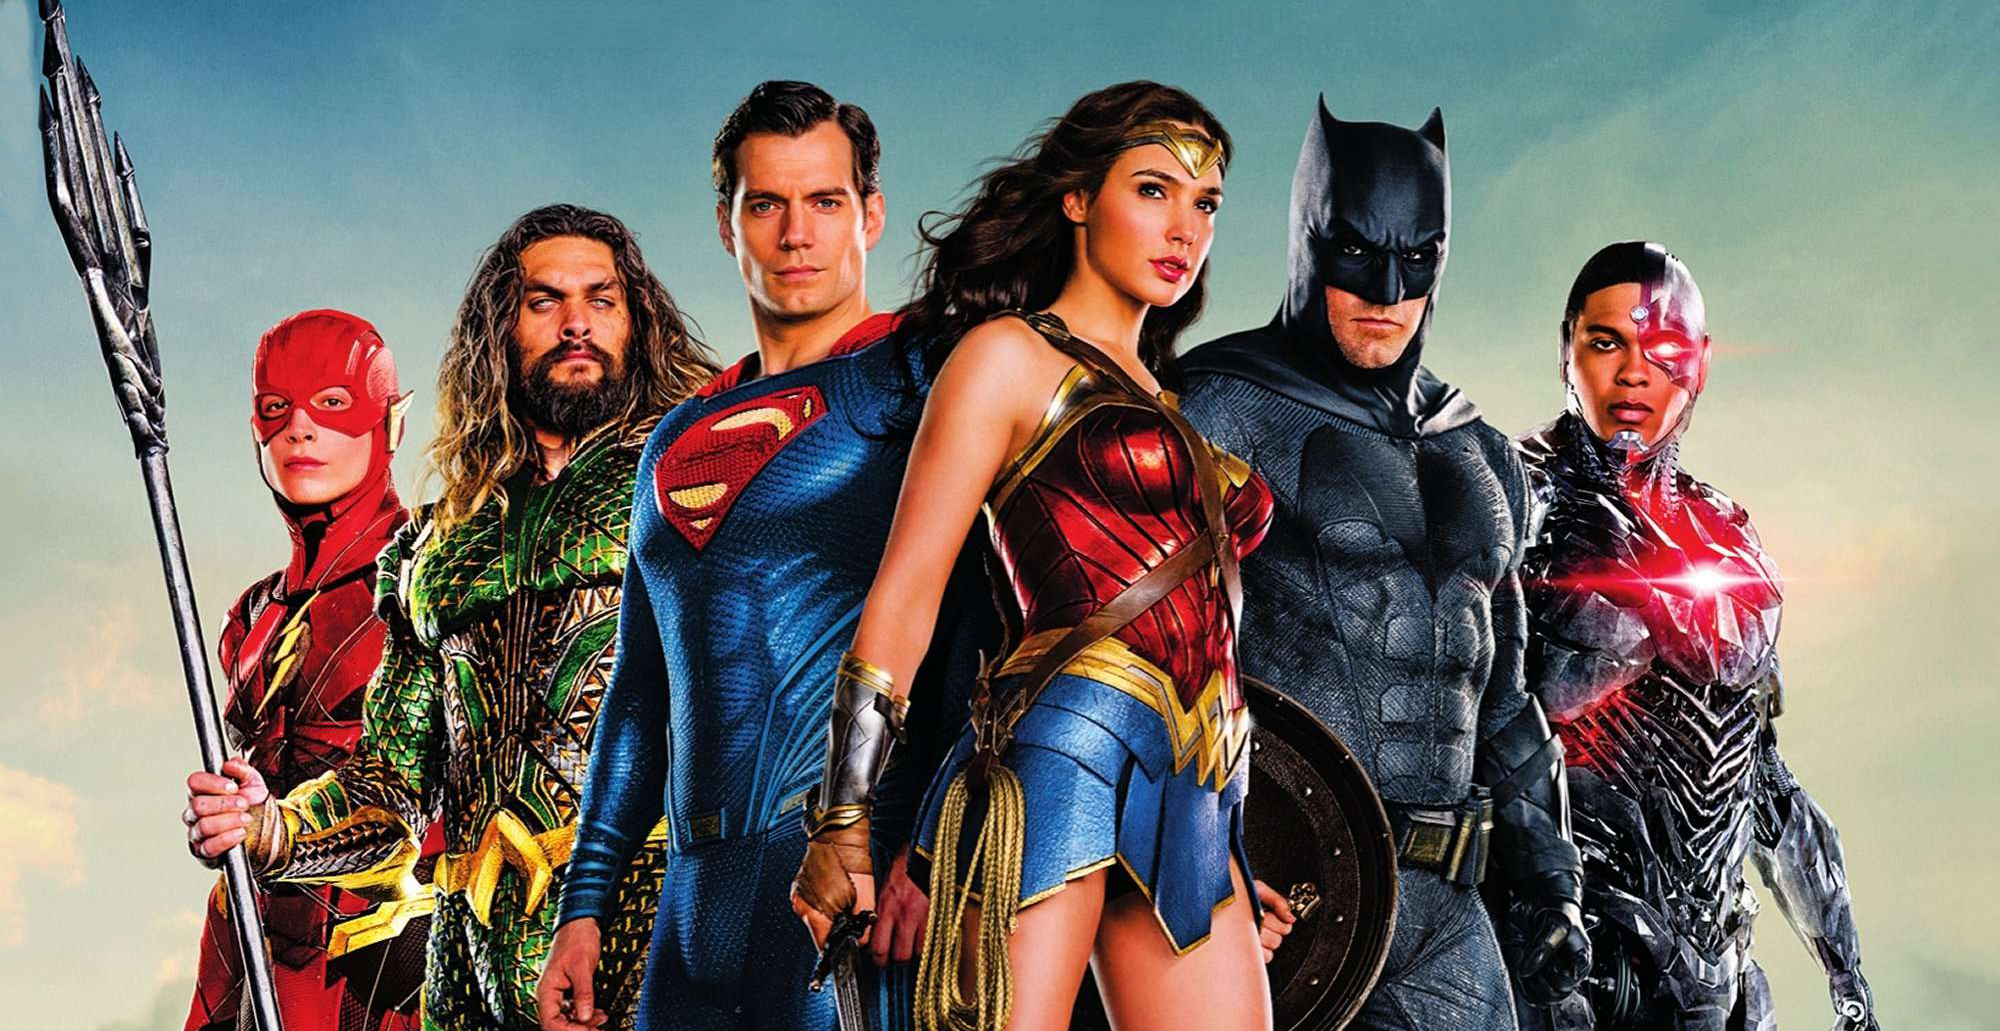 Justice League Movie Poster Hd Movies 4k Wallpapers Images